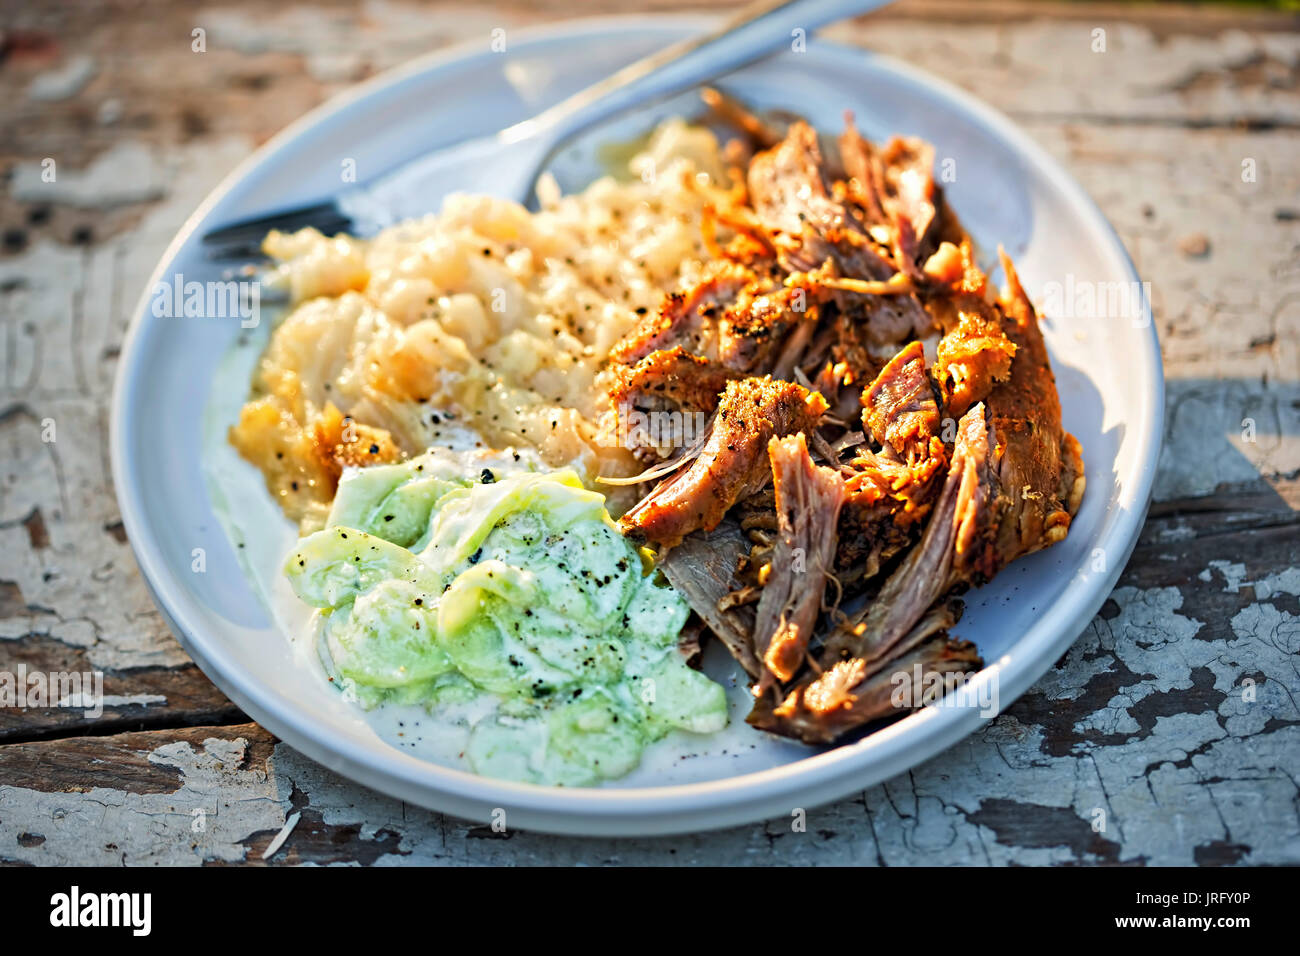 Pulled, seasoned pork, with mashed fried potatoes and cucumber and sour cream salad - Stock Image